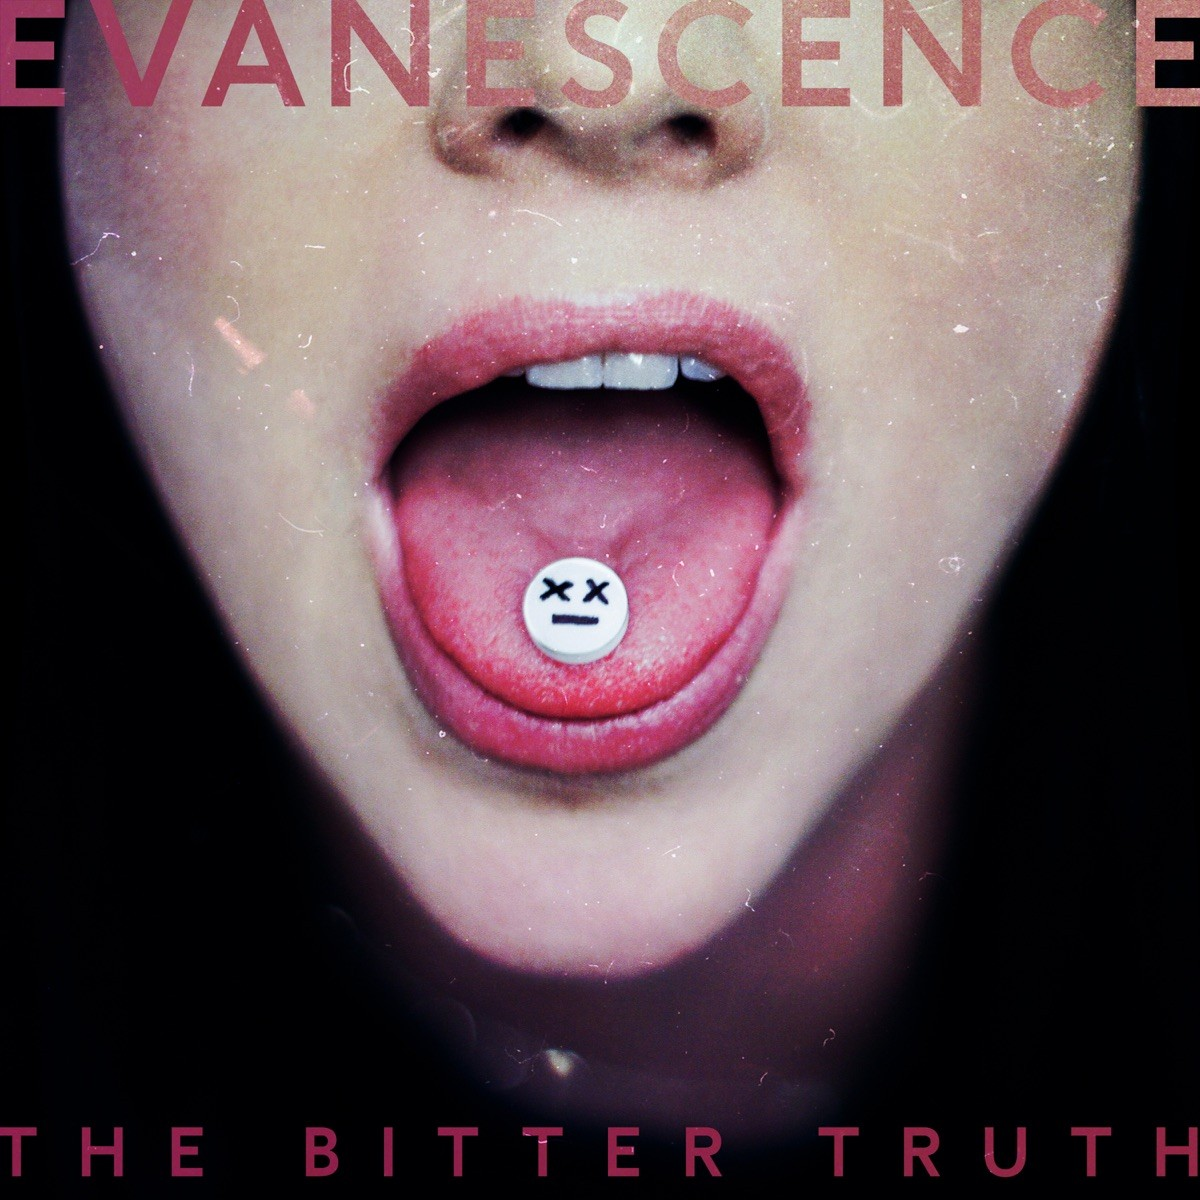 Evanescence - The Bitter Truth CD - 190759243527